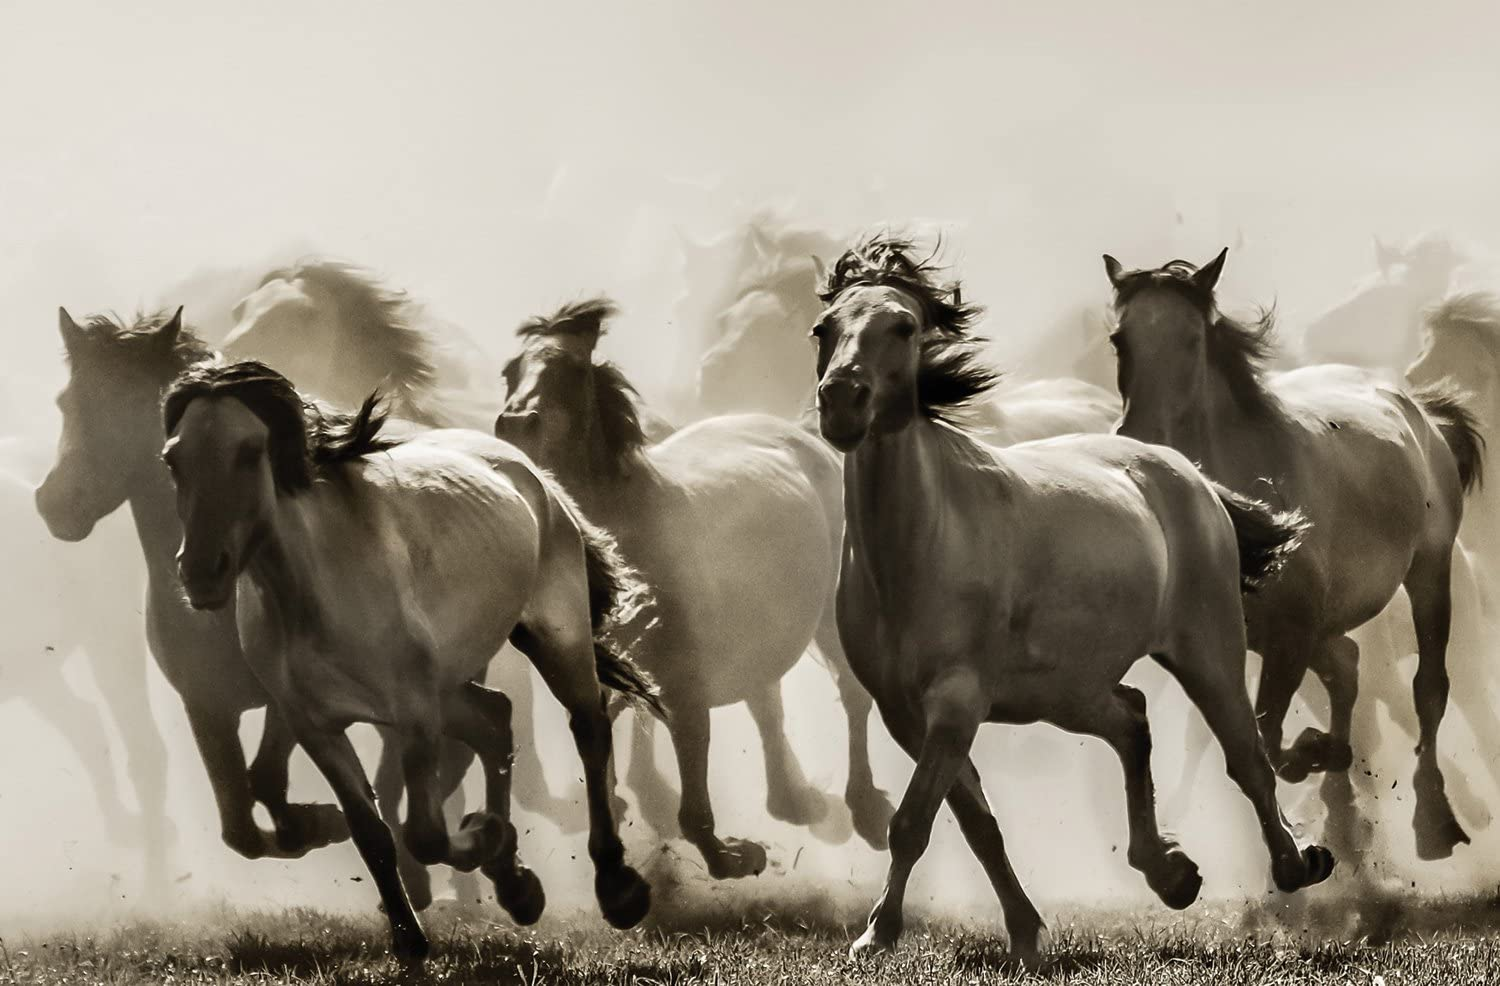 JP London Heavyweight Non Woven Art JPL and Heidi Bartsch Present Horse Wild Stampede Rustic 36in x 24in Prepasted Fully Removable Wall Poster Mural SPMURLT1X819810